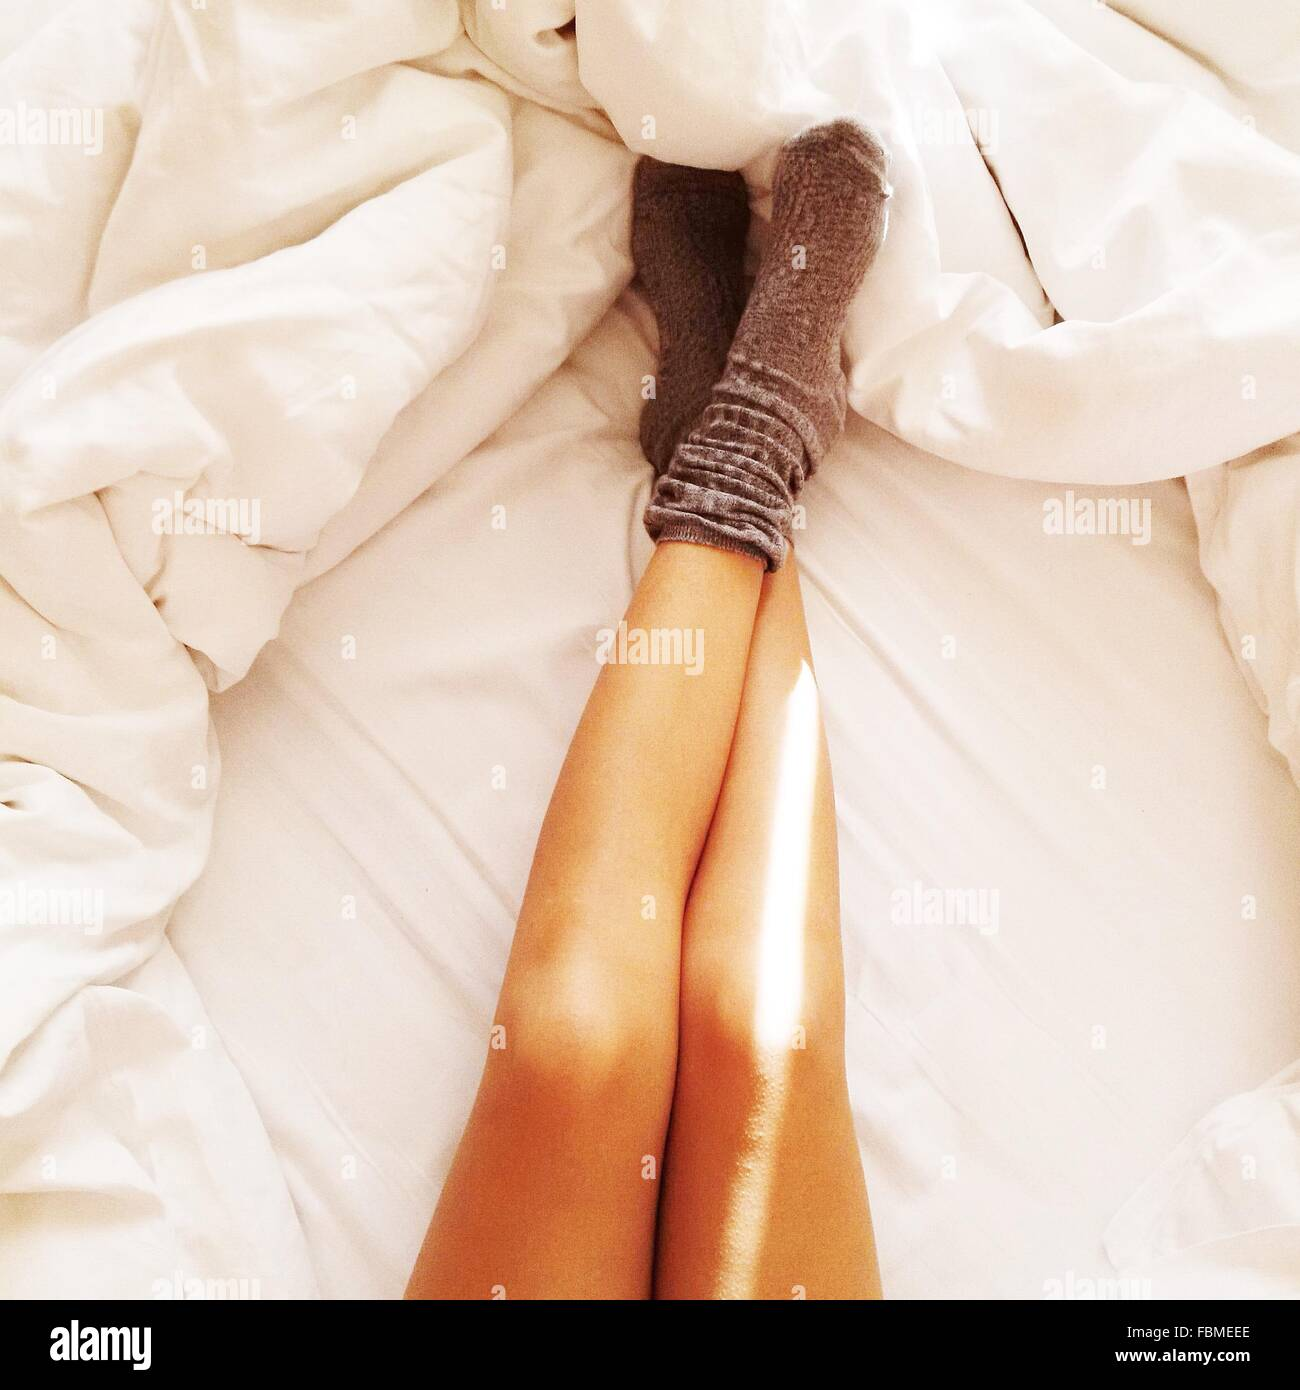 Woman's legs on white sheets - Stock Image